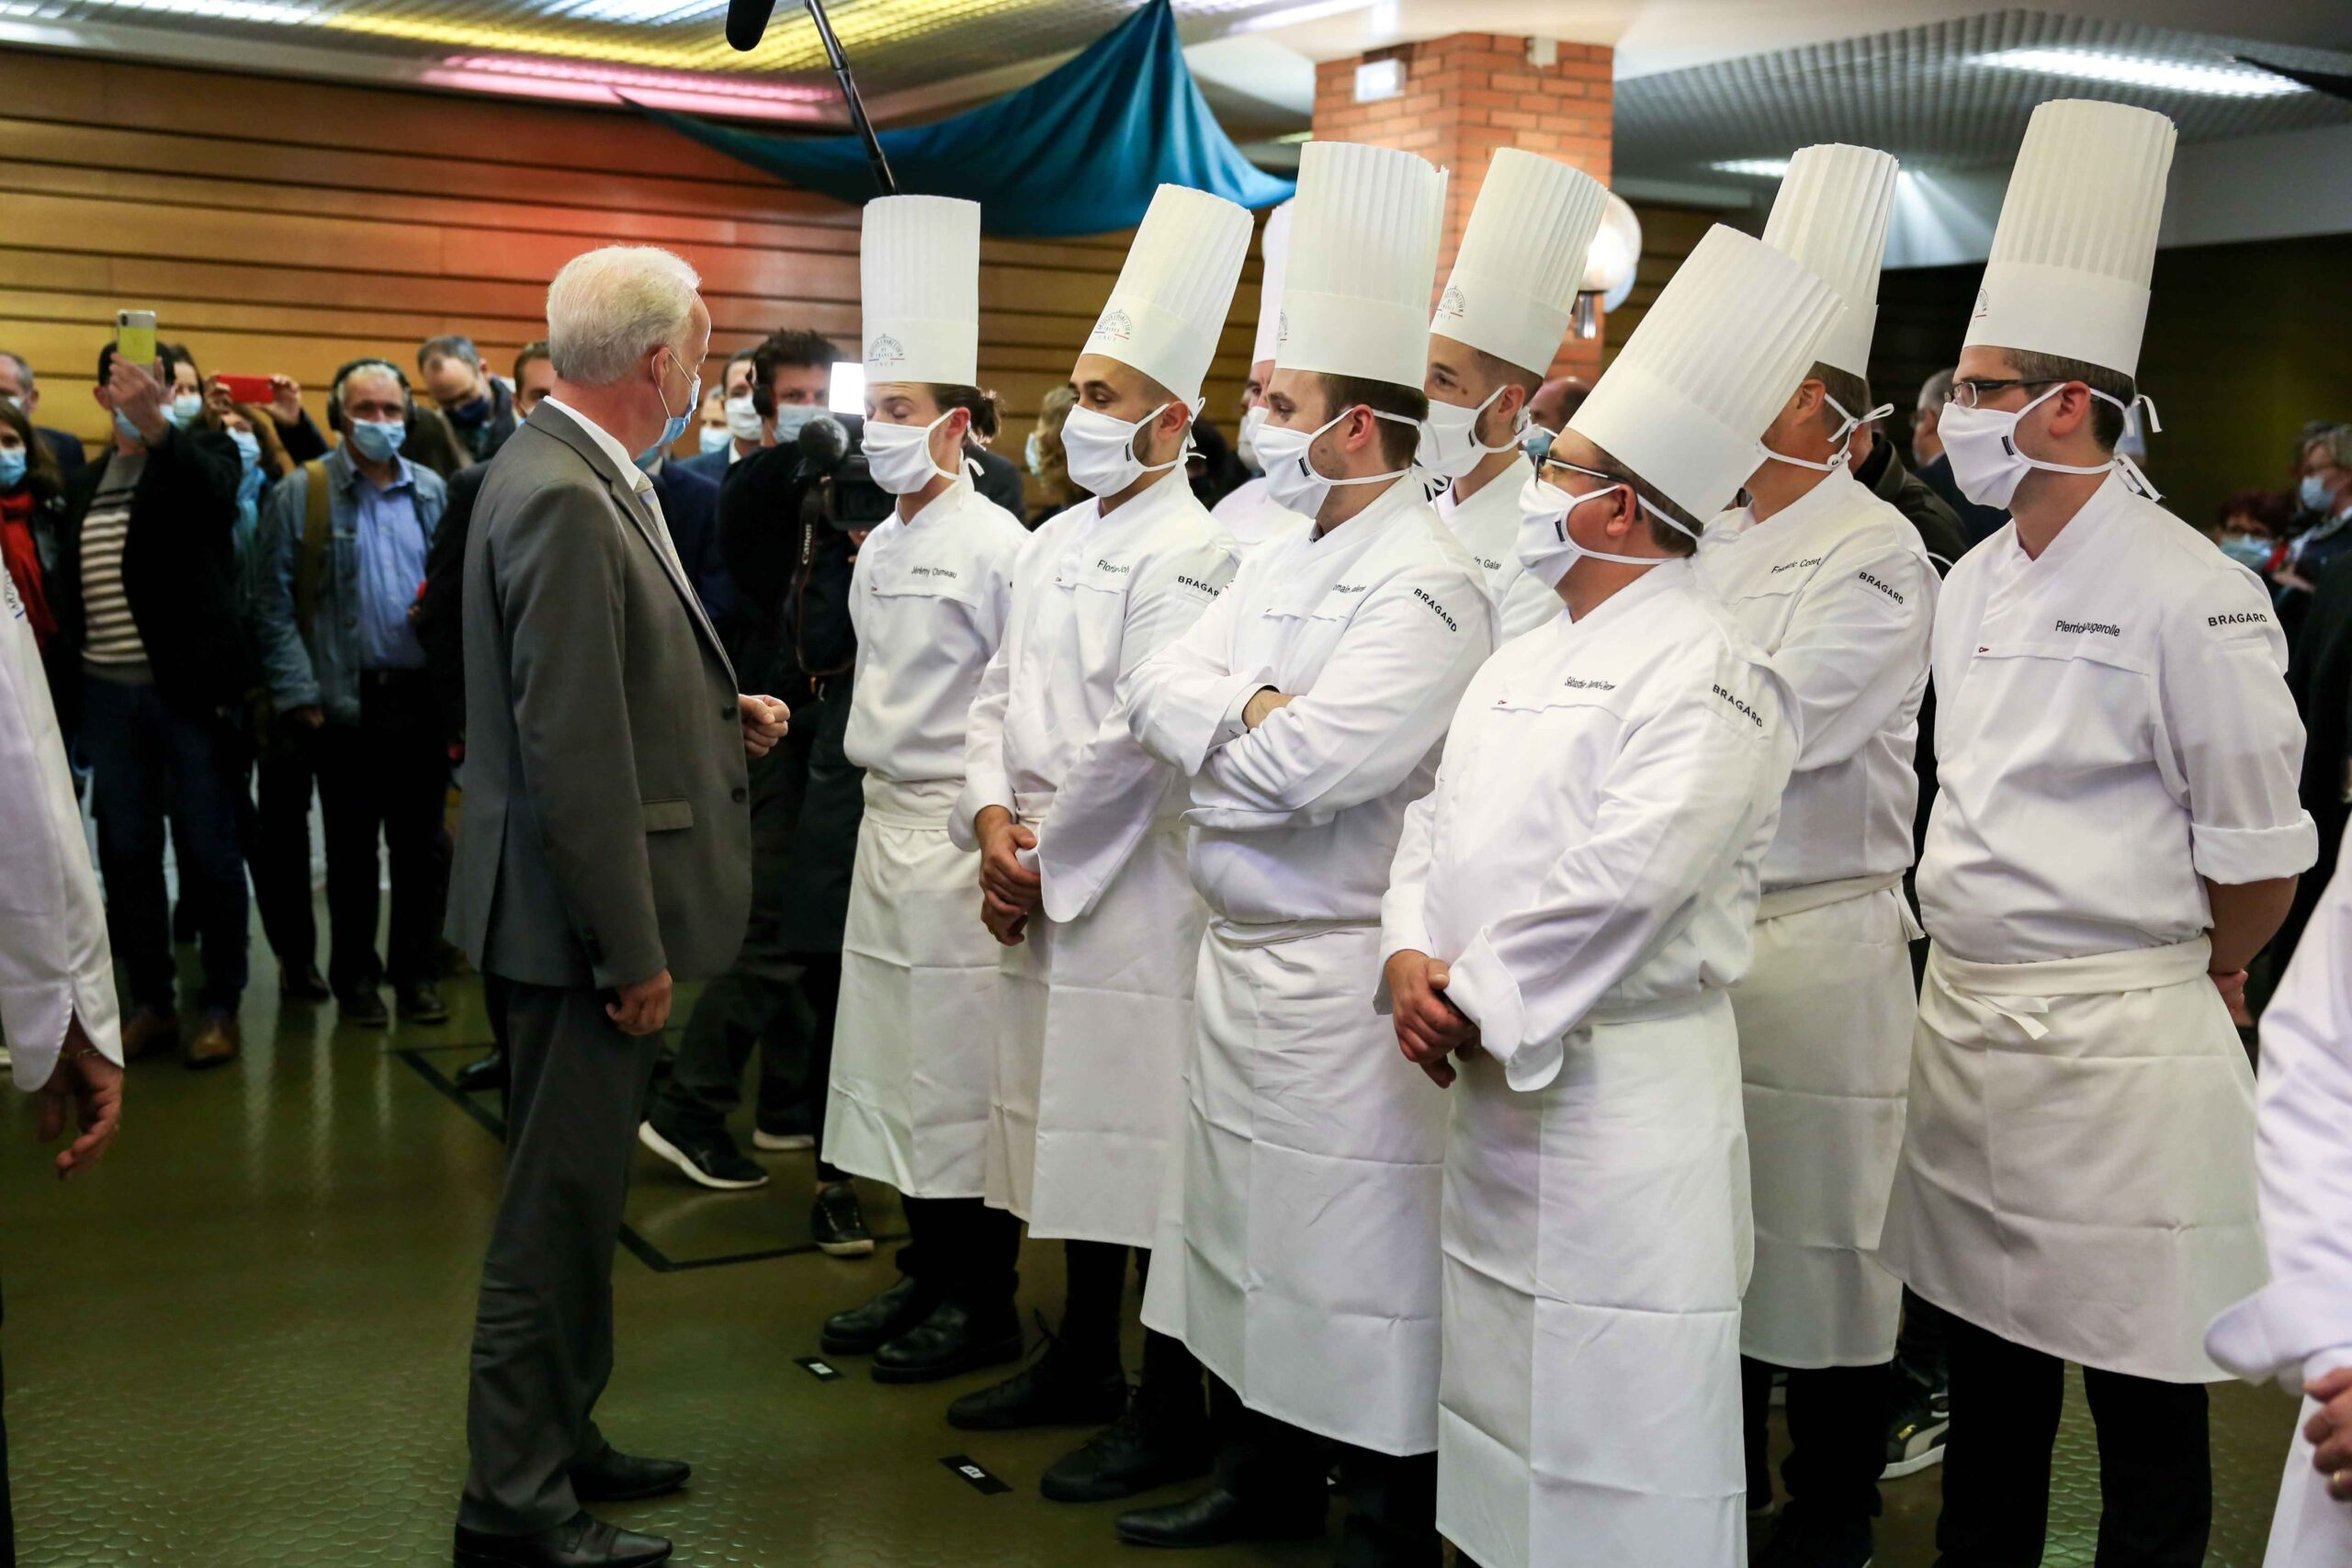 French Junior Minister of Small and Medium Entreprises Alain Griset (L) visits the Culinary Professions Centre of Excellence (Centre d'excellence des professions culinaires – CEPROC) for the awards ceremony of the Grand Prix of France for artisanal cha